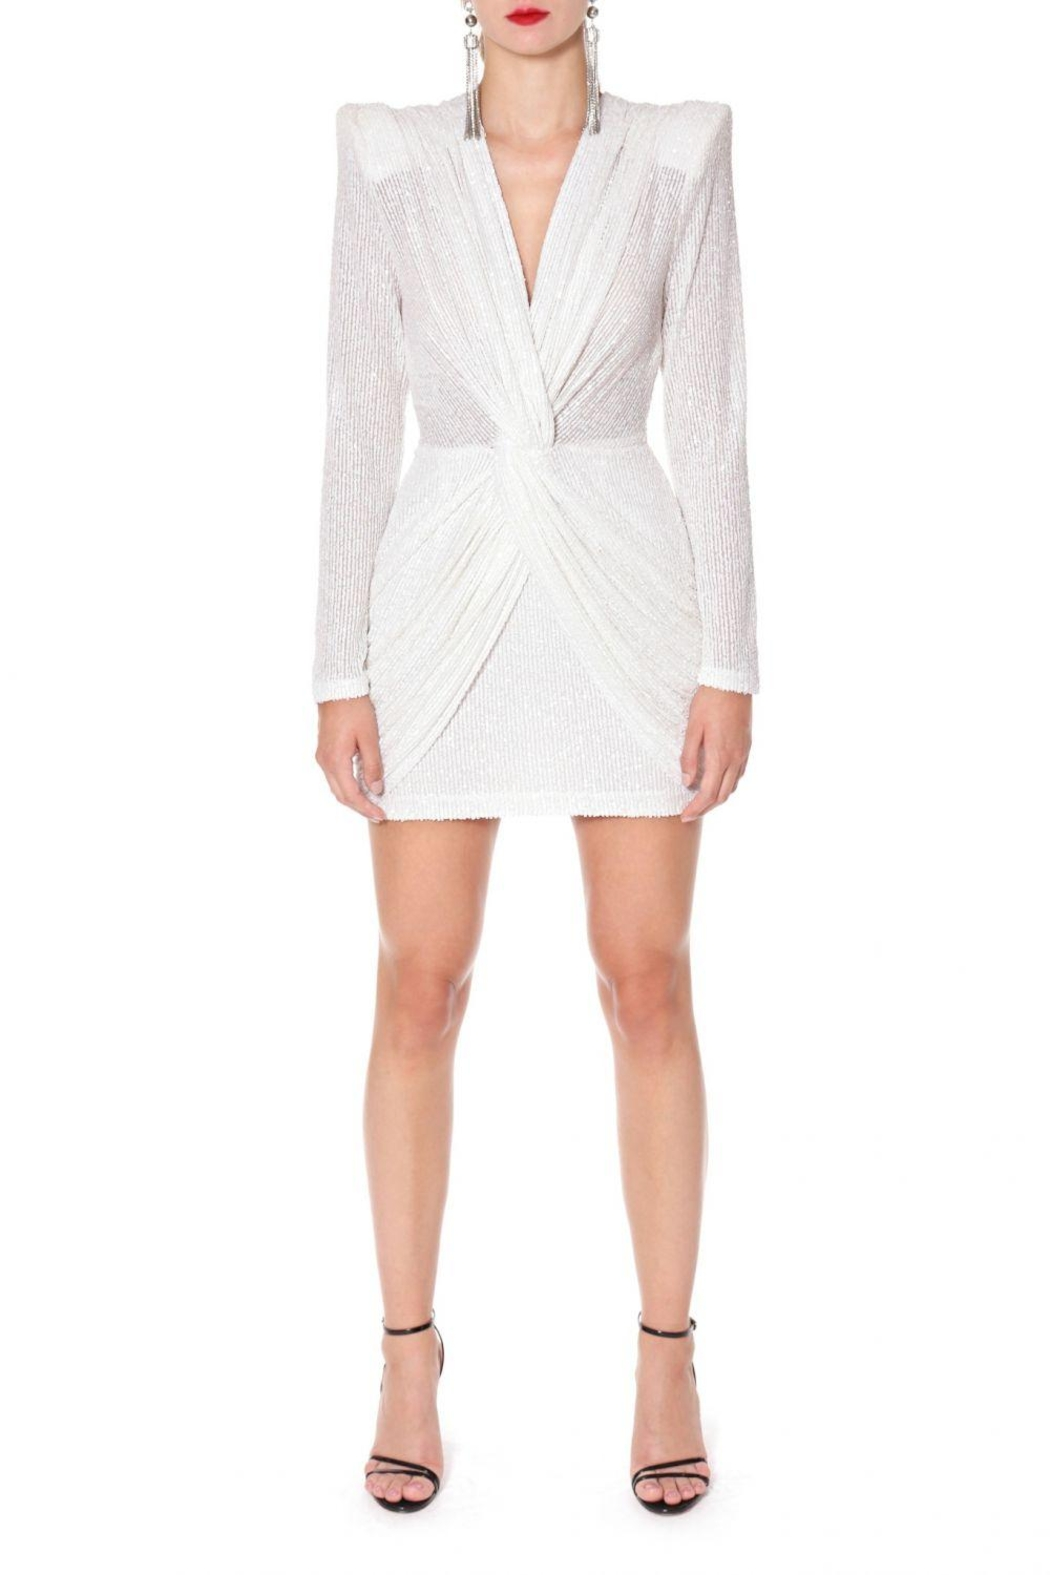 AGGI Dress Jennifer Super White - Side Cropped Image